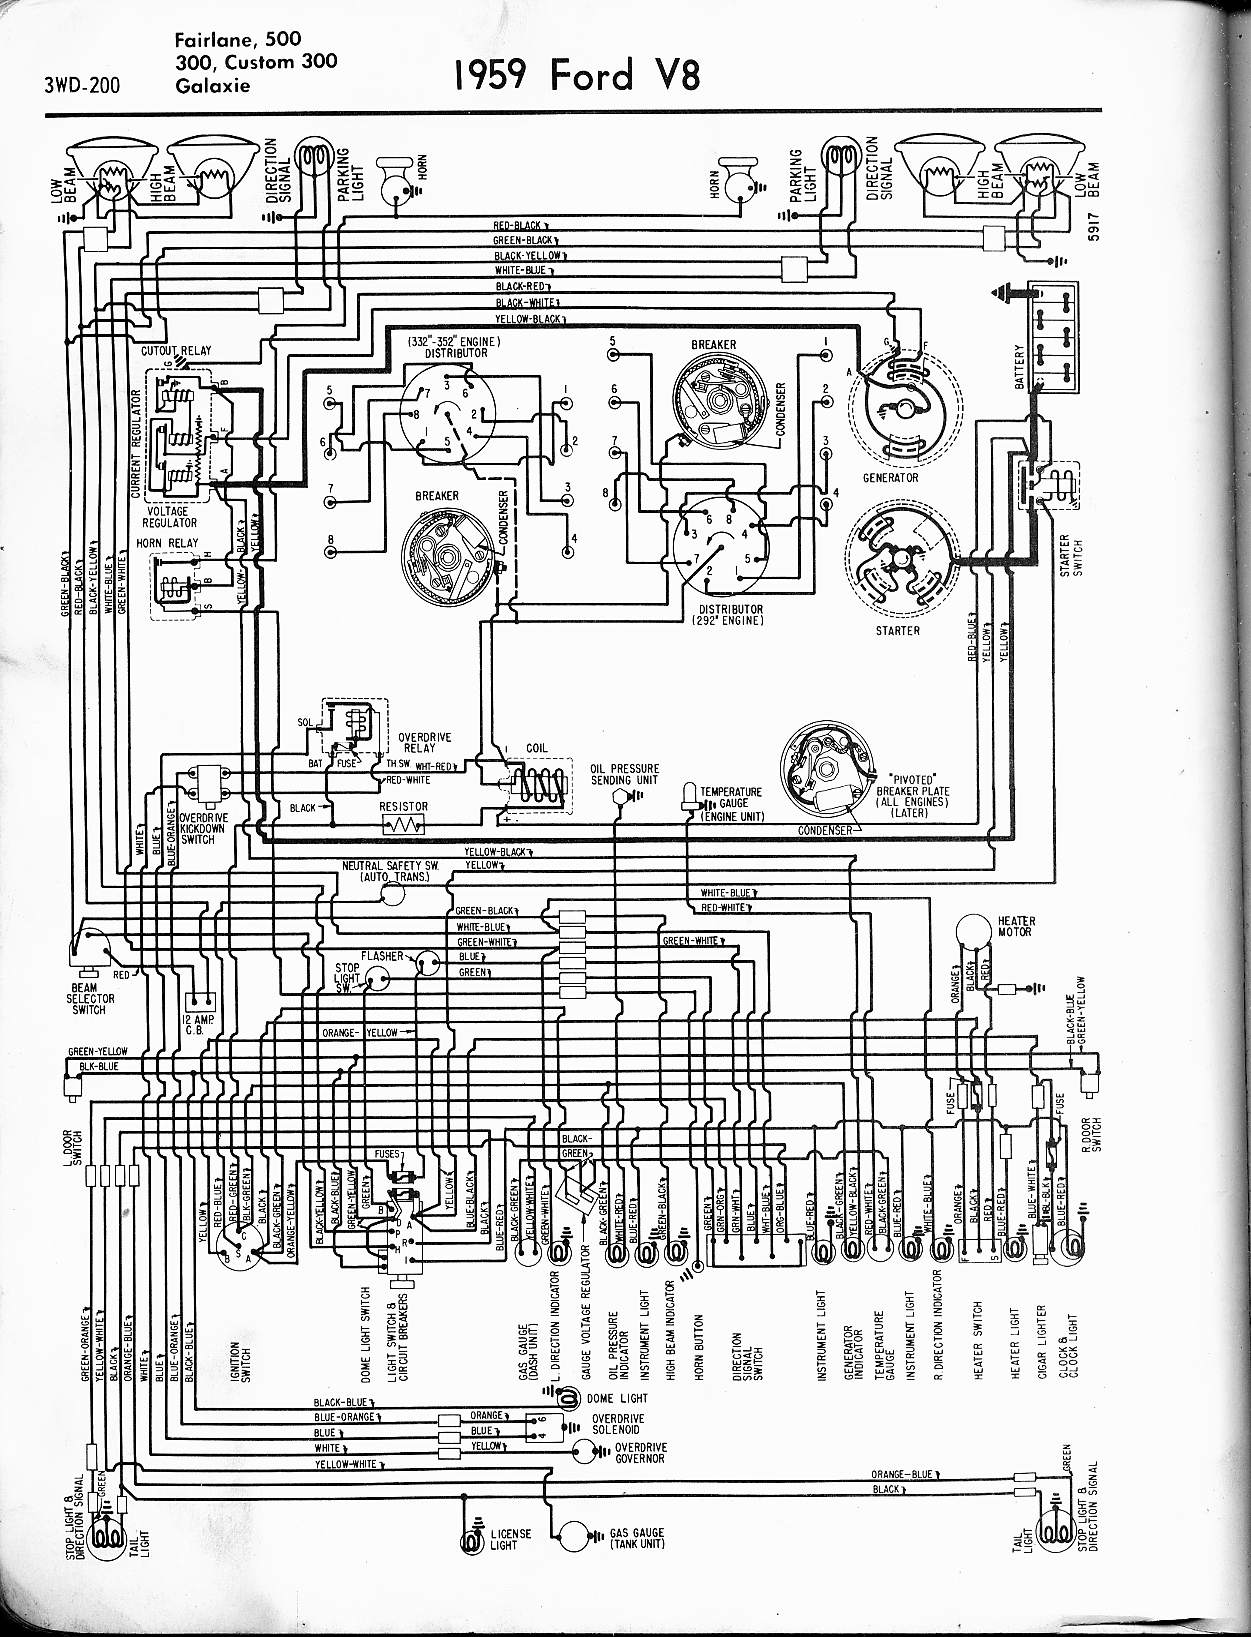 57 65 ford wiring diagrams rh oldcarmanualproject com Speaker Wiring Diagram 1964 Galaxie 1969 Ford Galaxie 500 Wiring Diagram